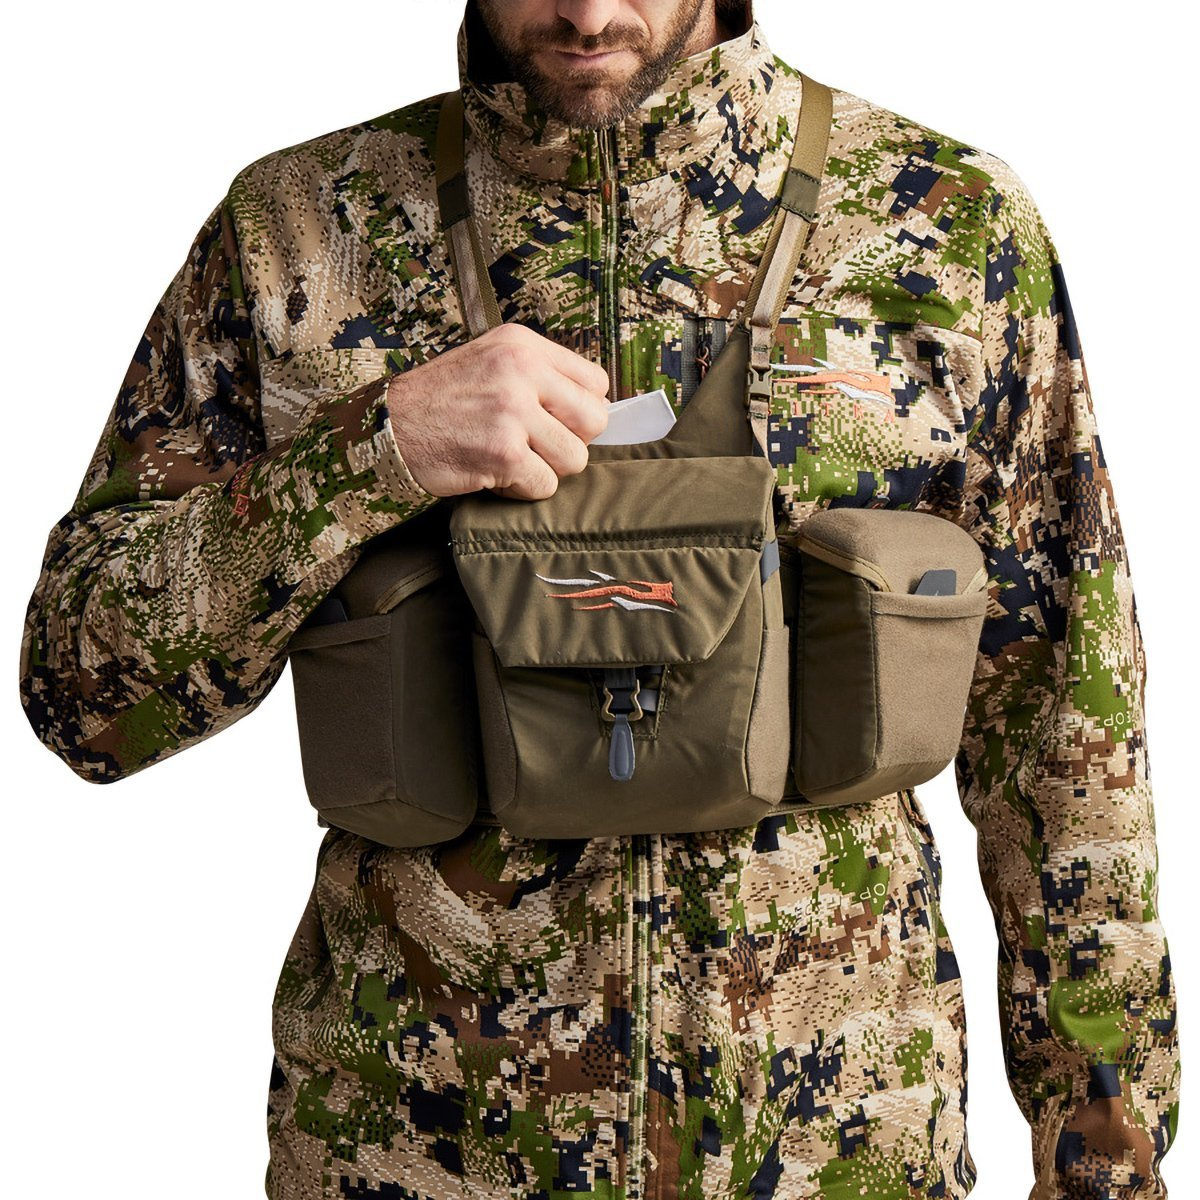 Sitka-Gear-Mountain-Optics-Binocular-Harness-Pyrite-Solid-Tag-Square.jpg